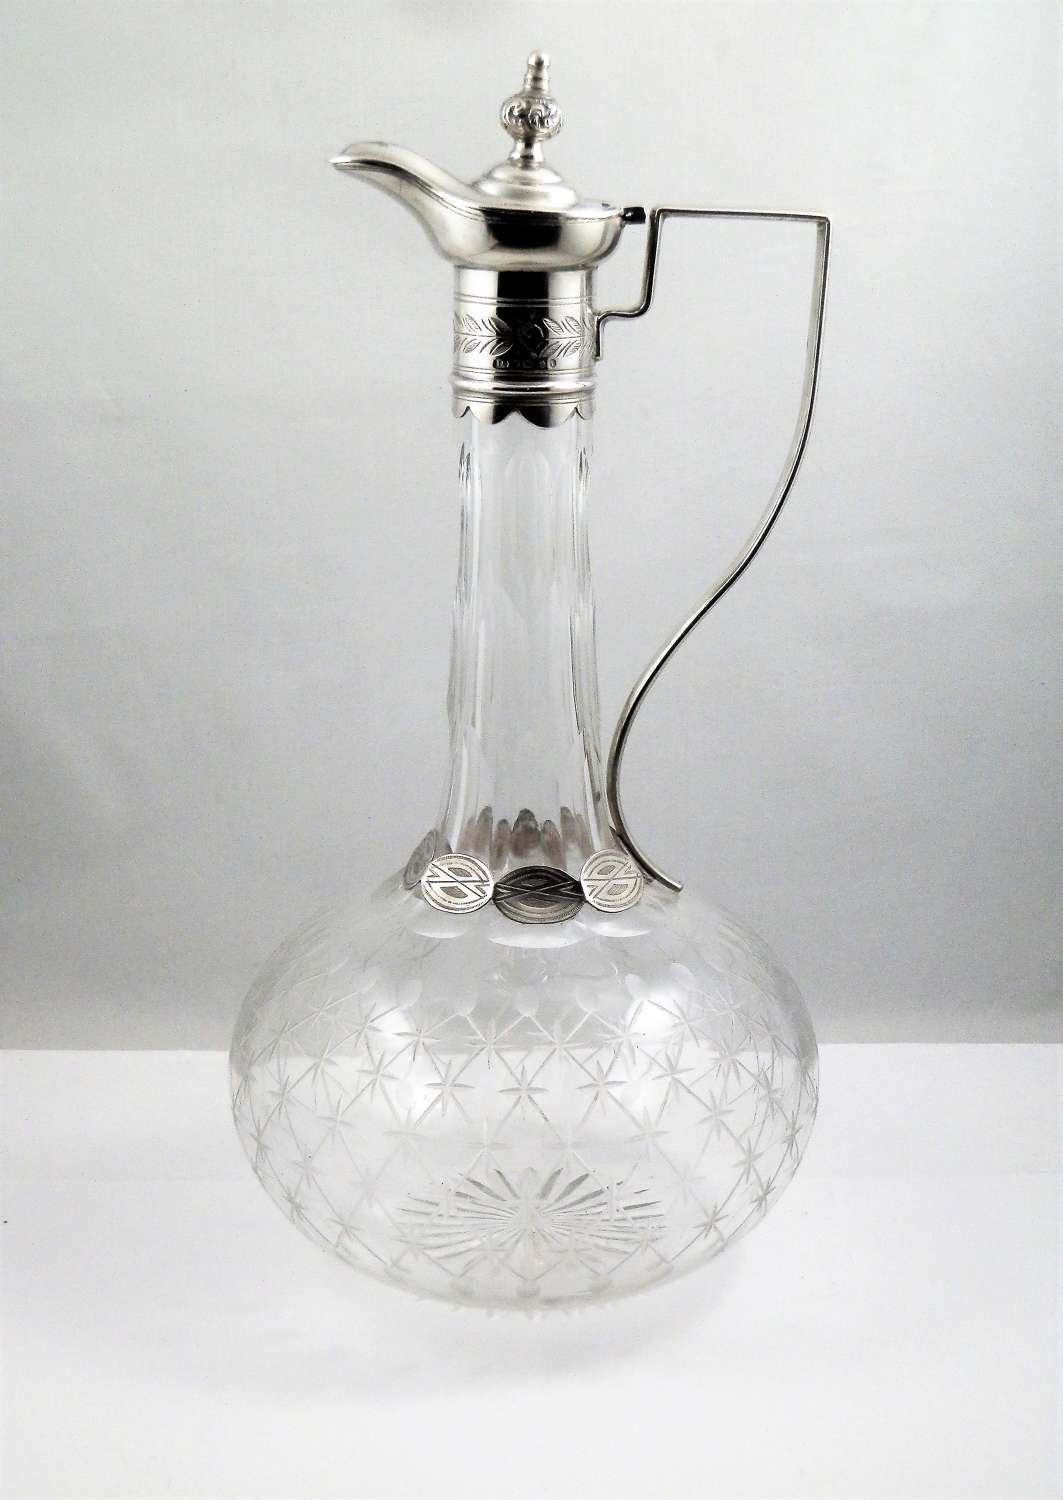 Victorian silver and cut glass decanter, 1885